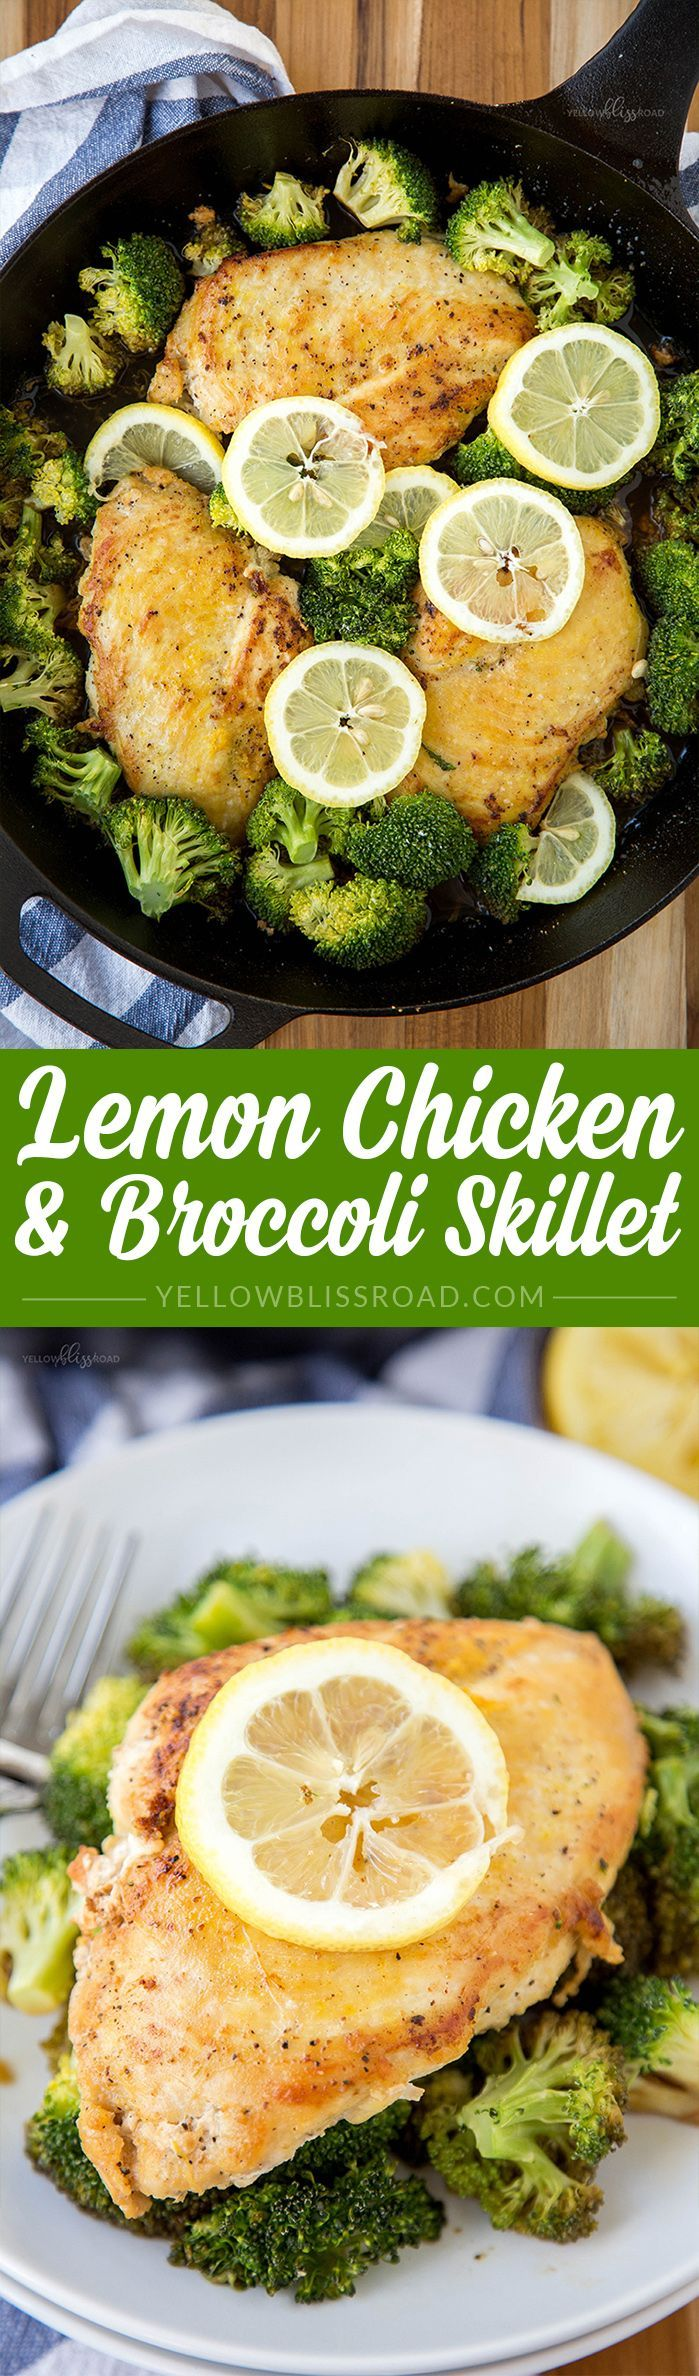 Lemon Chicken & Broccoli Skillet - 30 minutes and one skillet is all you need to make this easy dinner recipe